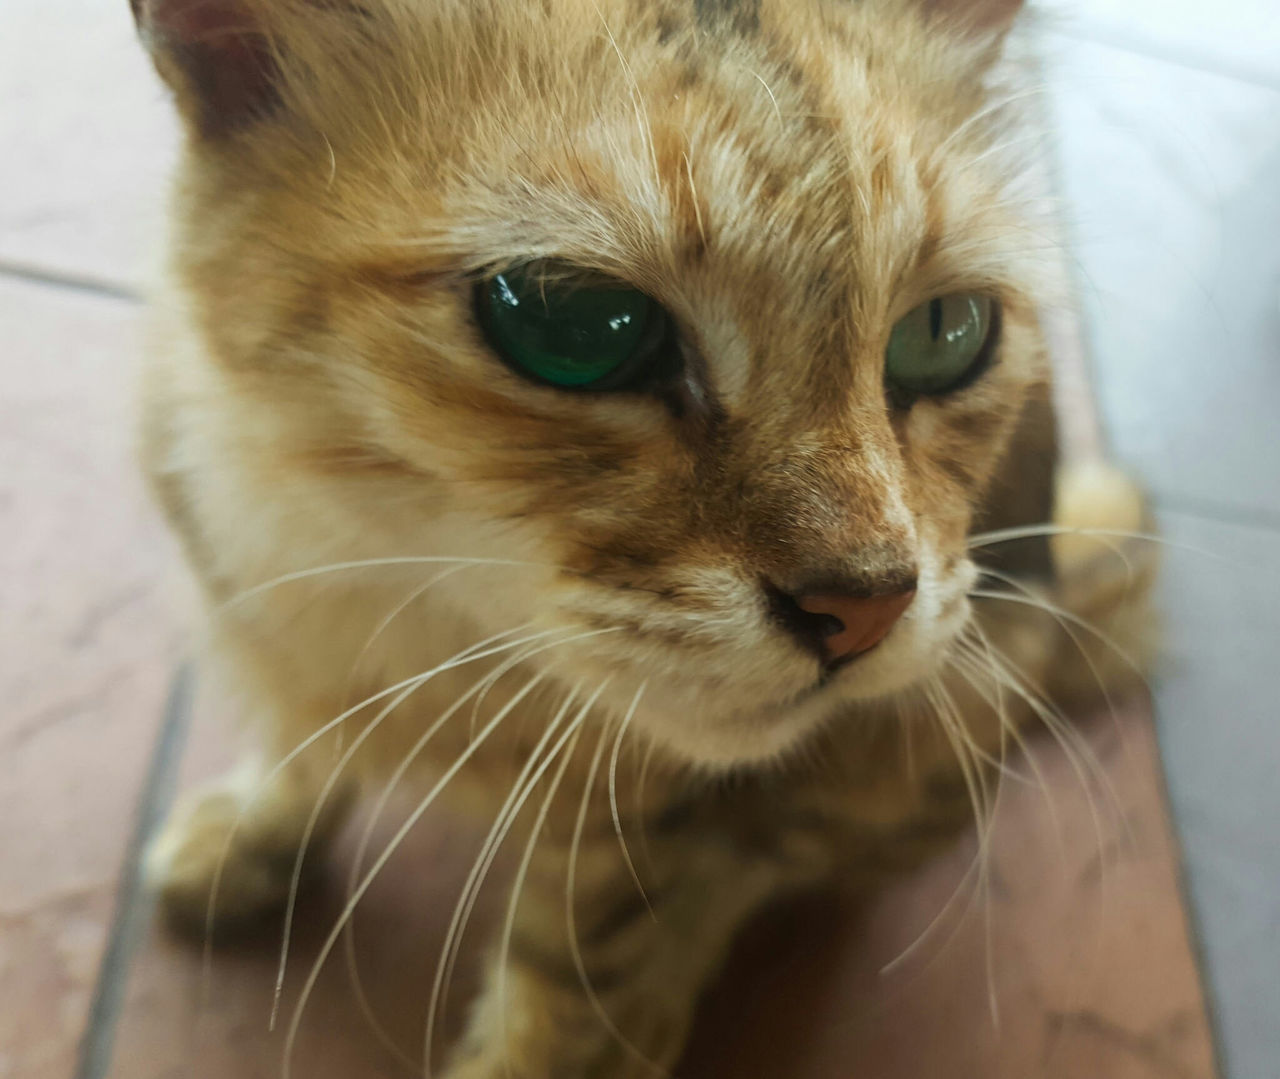 domestic cat, one animal, animal themes, pets, mammal, domestic animals, whisker, feline, looking at camera, portrait, close-up, no people, indoors, day